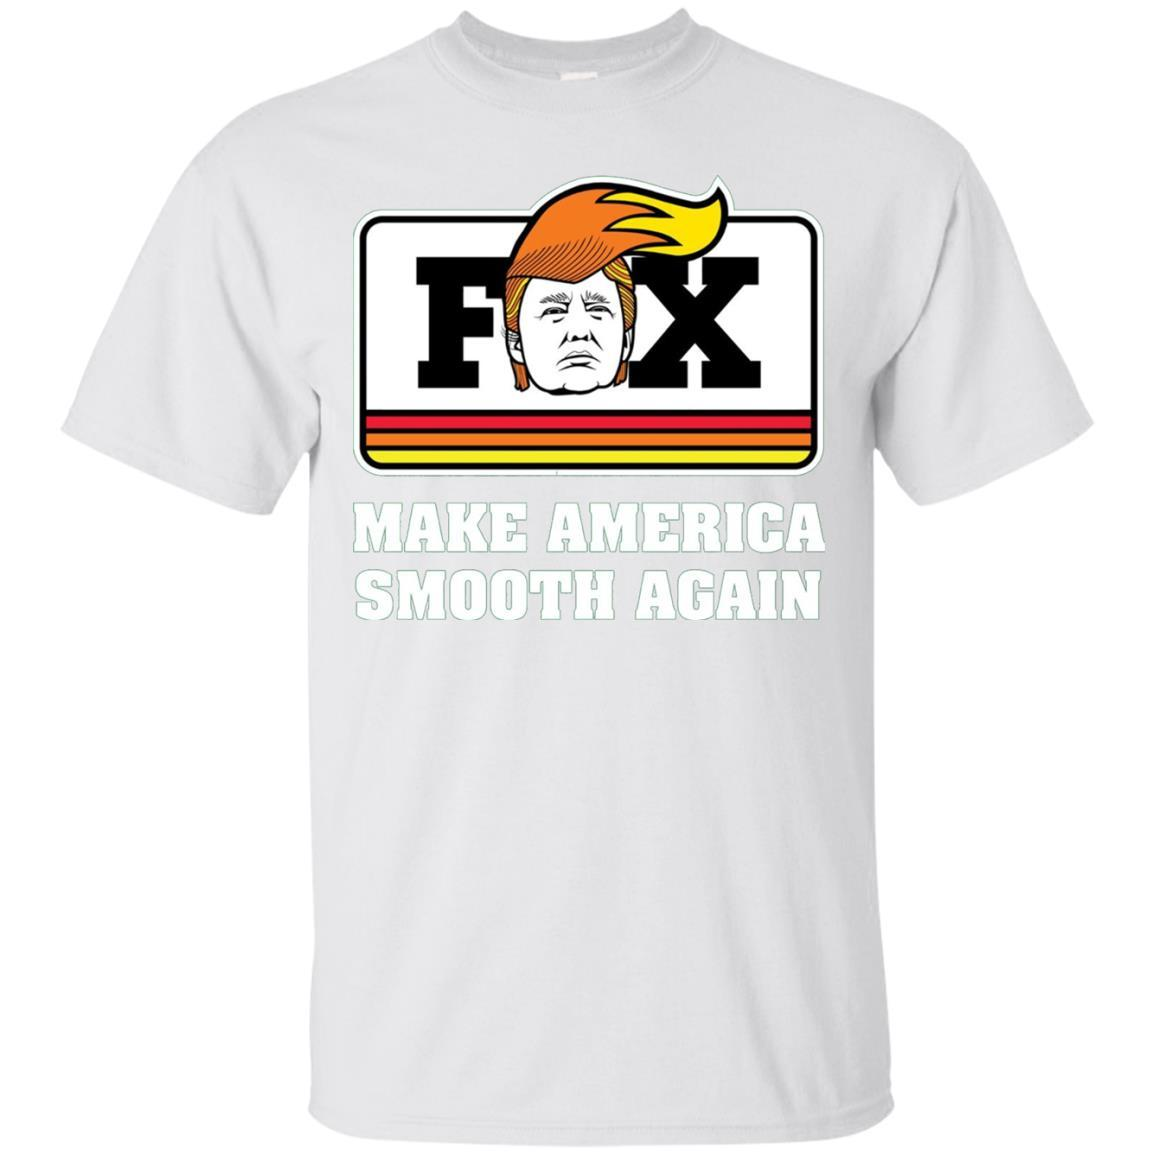 Fox Trump - Make America Smooth Again - Funny Cycle - T-Shirt